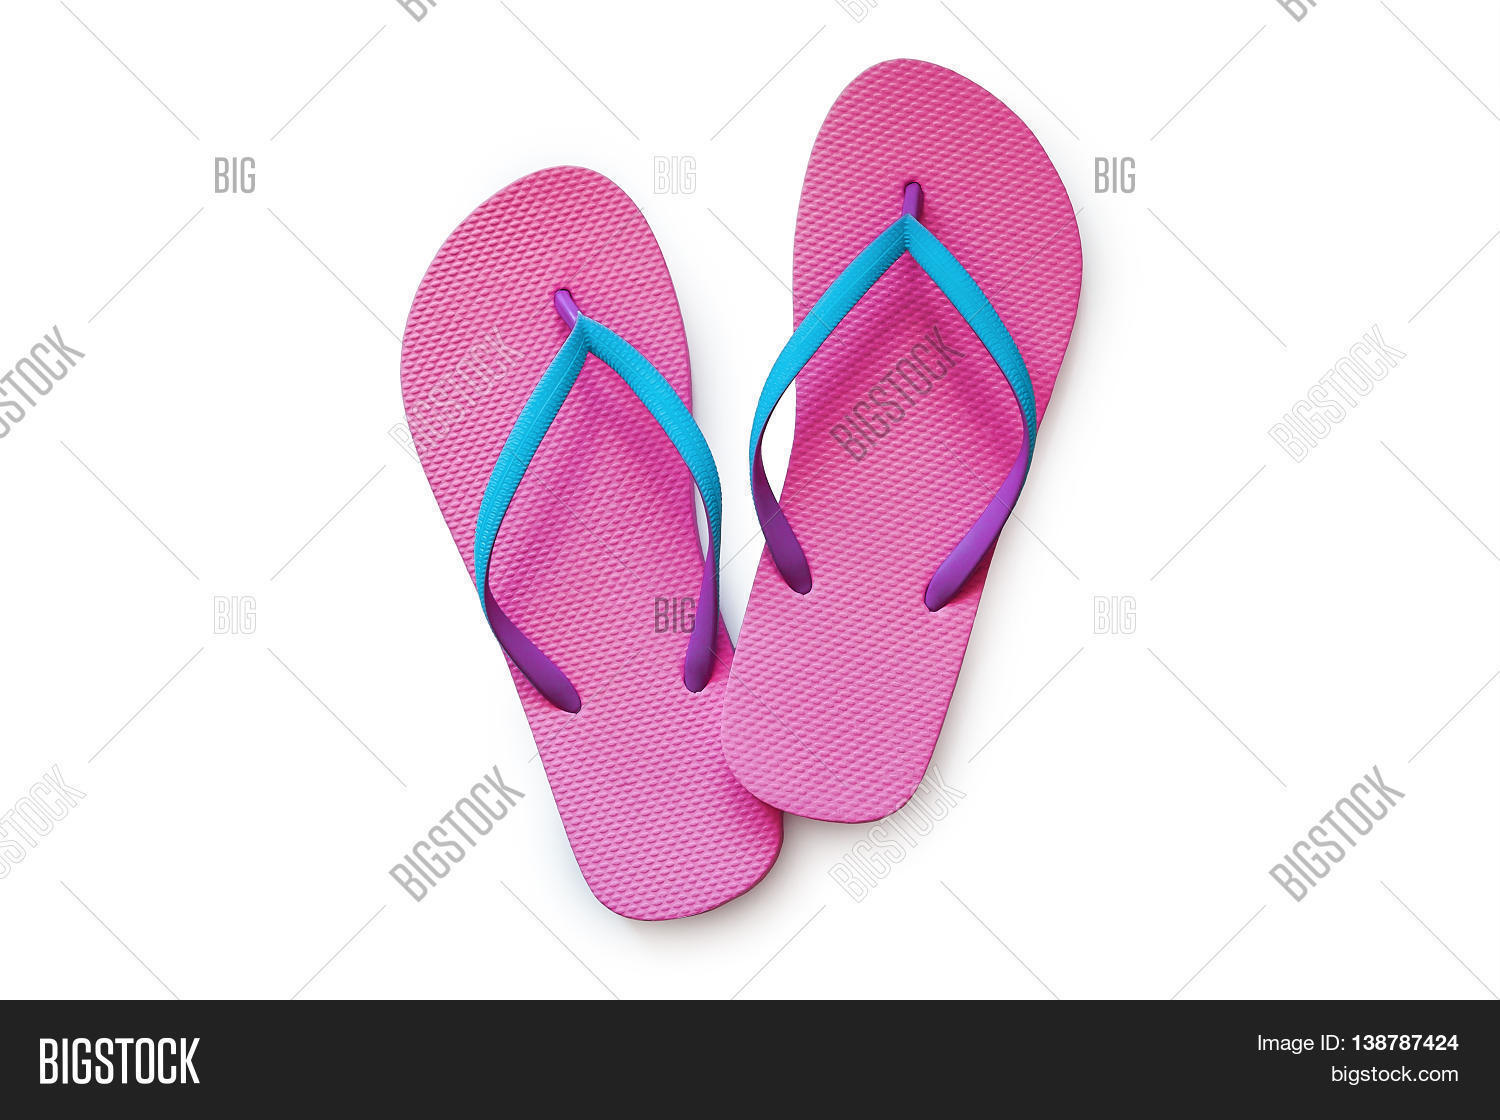 904e18dddcfc Pink flip flops isolated on white background. Top view